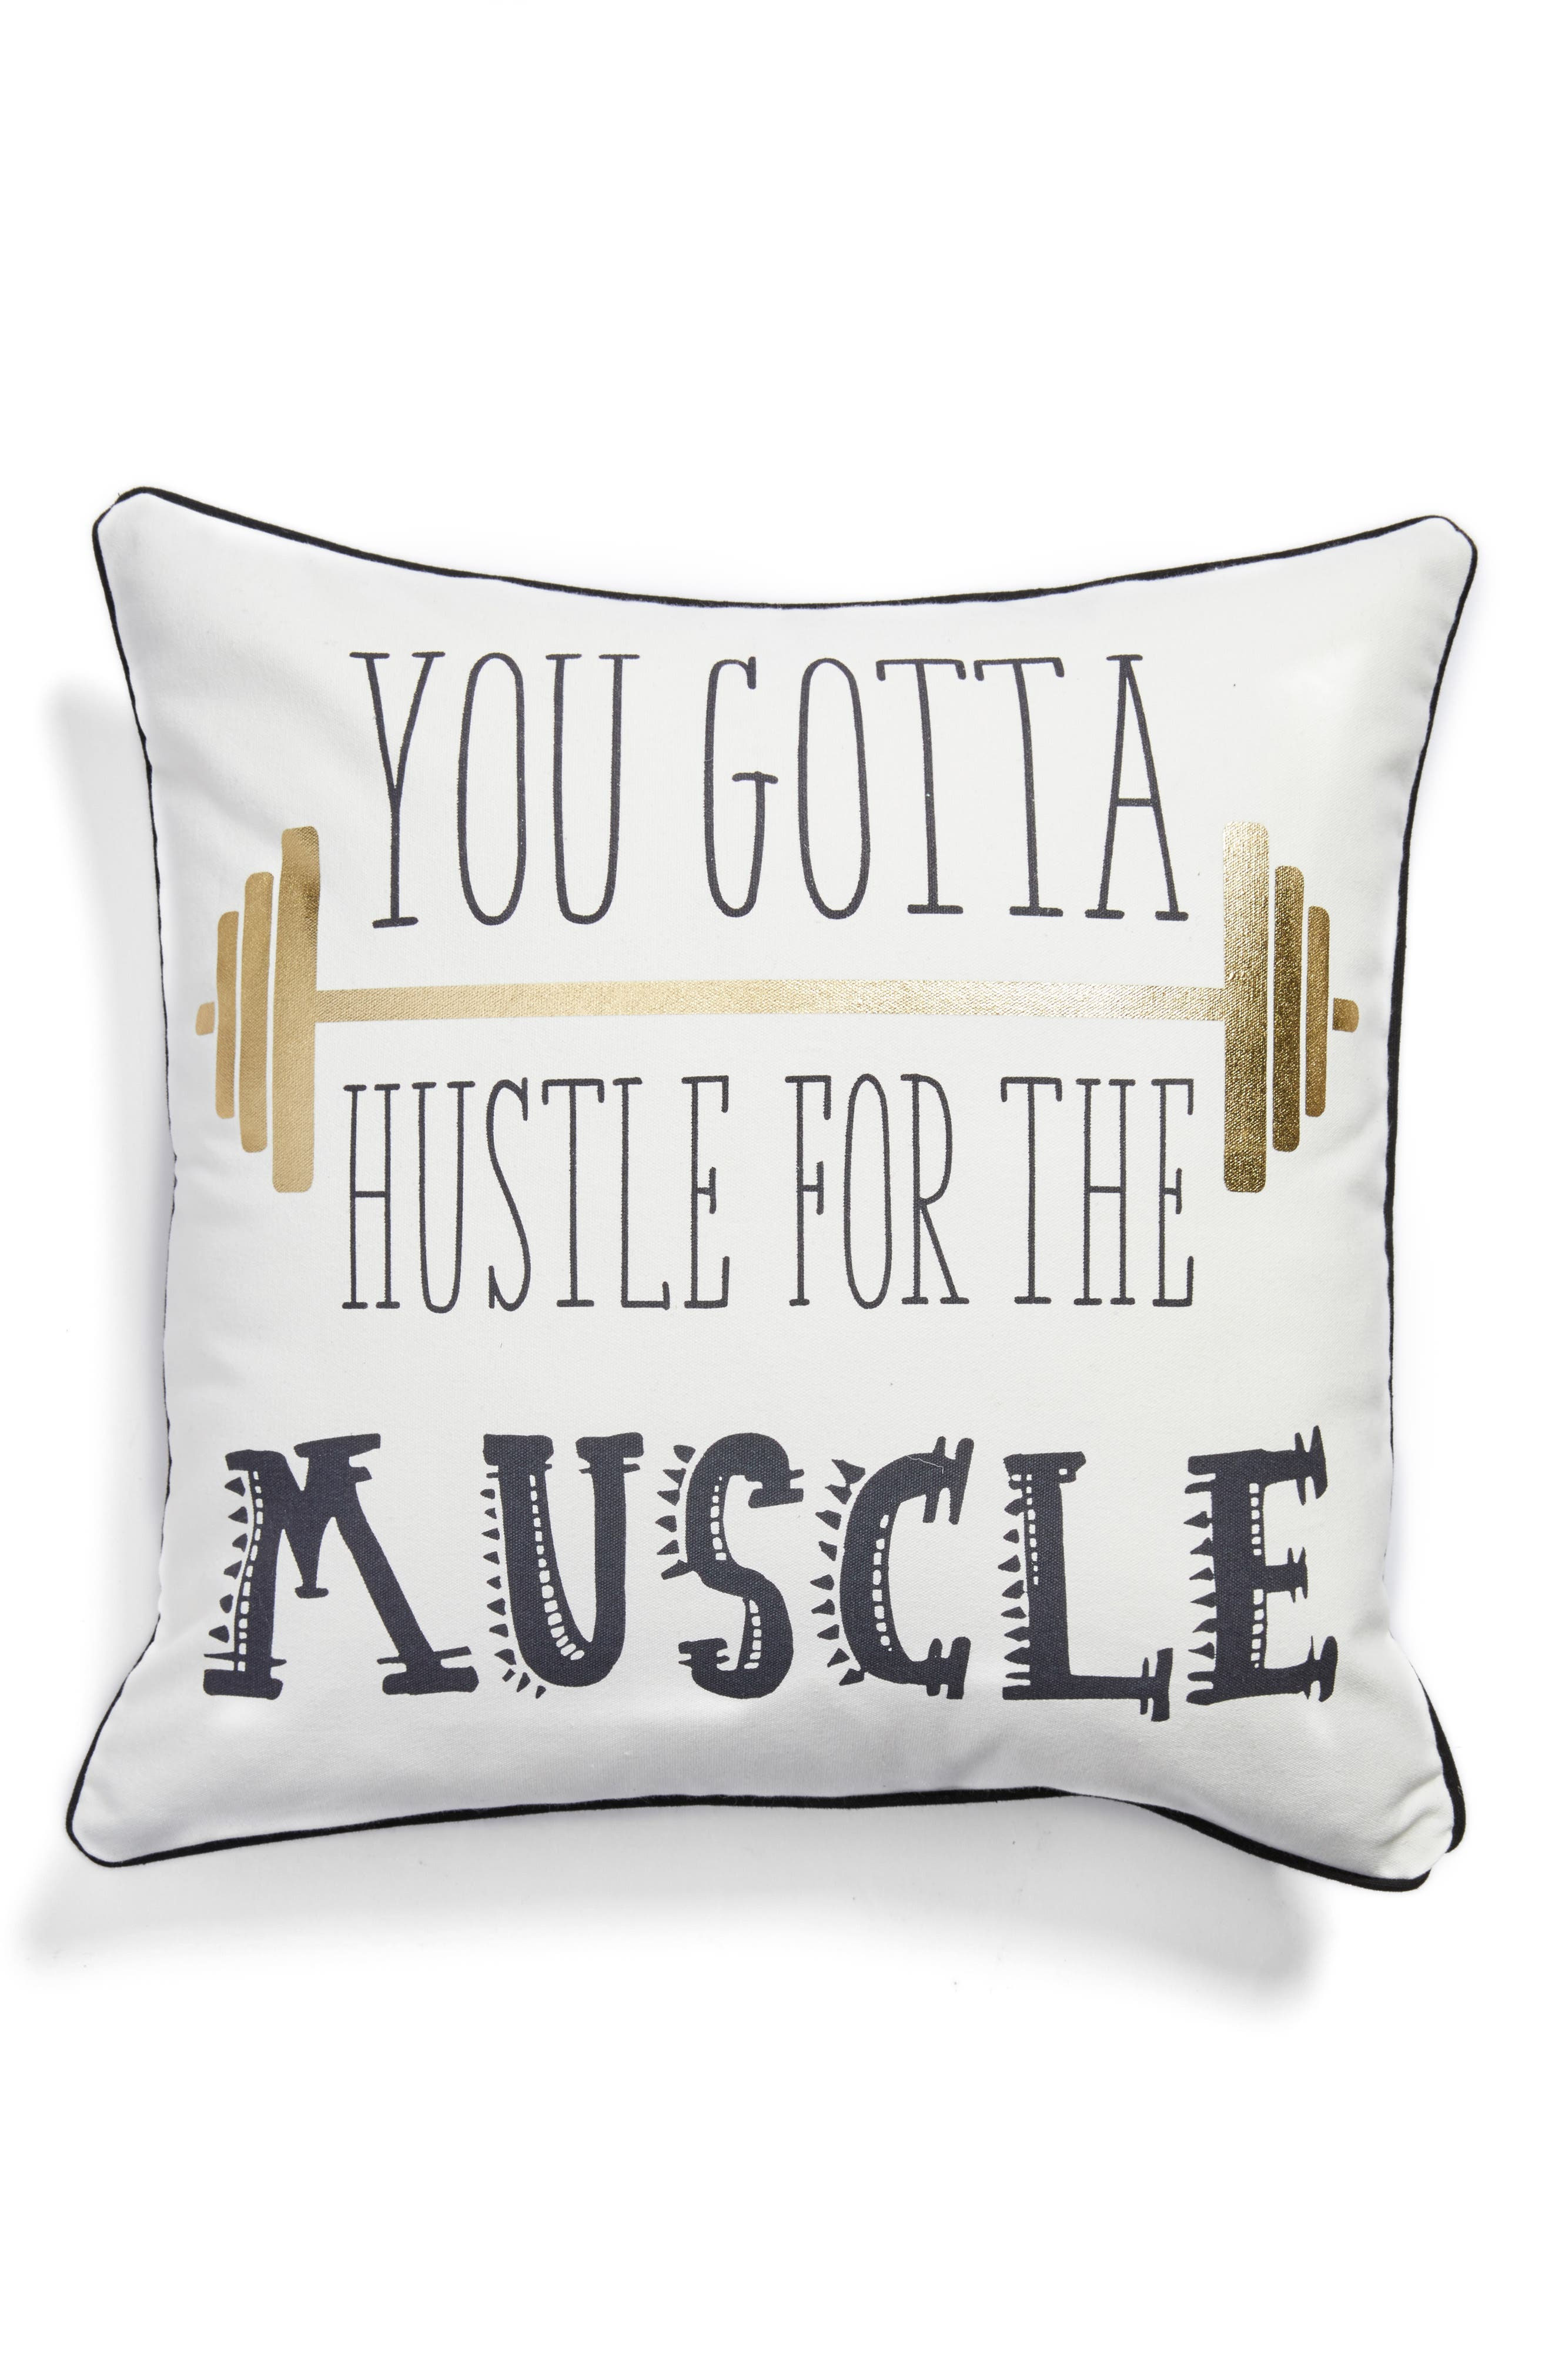 Levtex Hustle for the Muscle Pillow